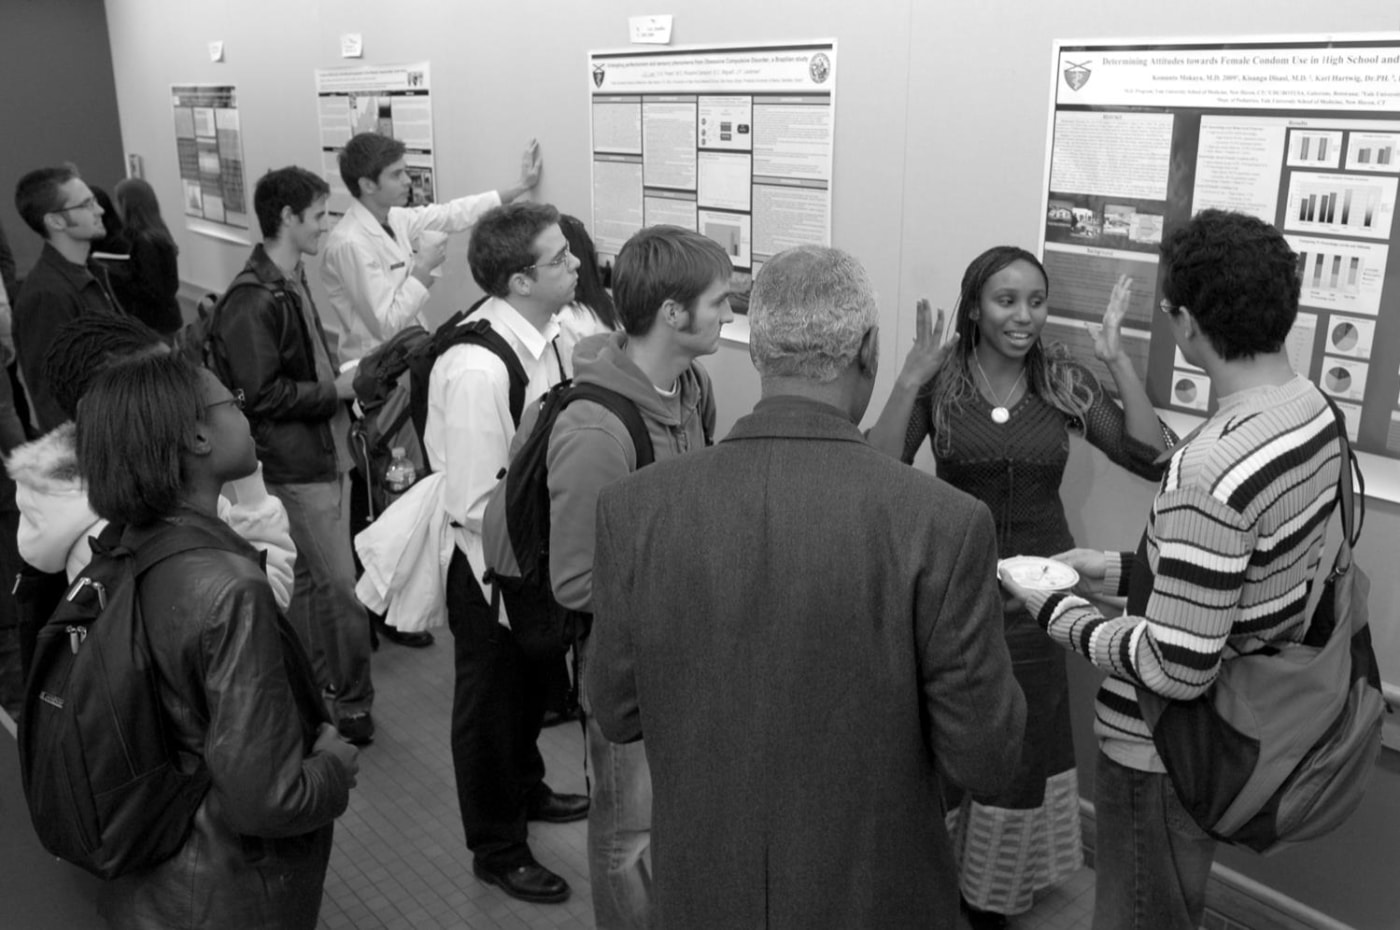 The 2006 Downs International Health Student Travel Fellows reported on their health research and findings in October, in posters and oral presentations.